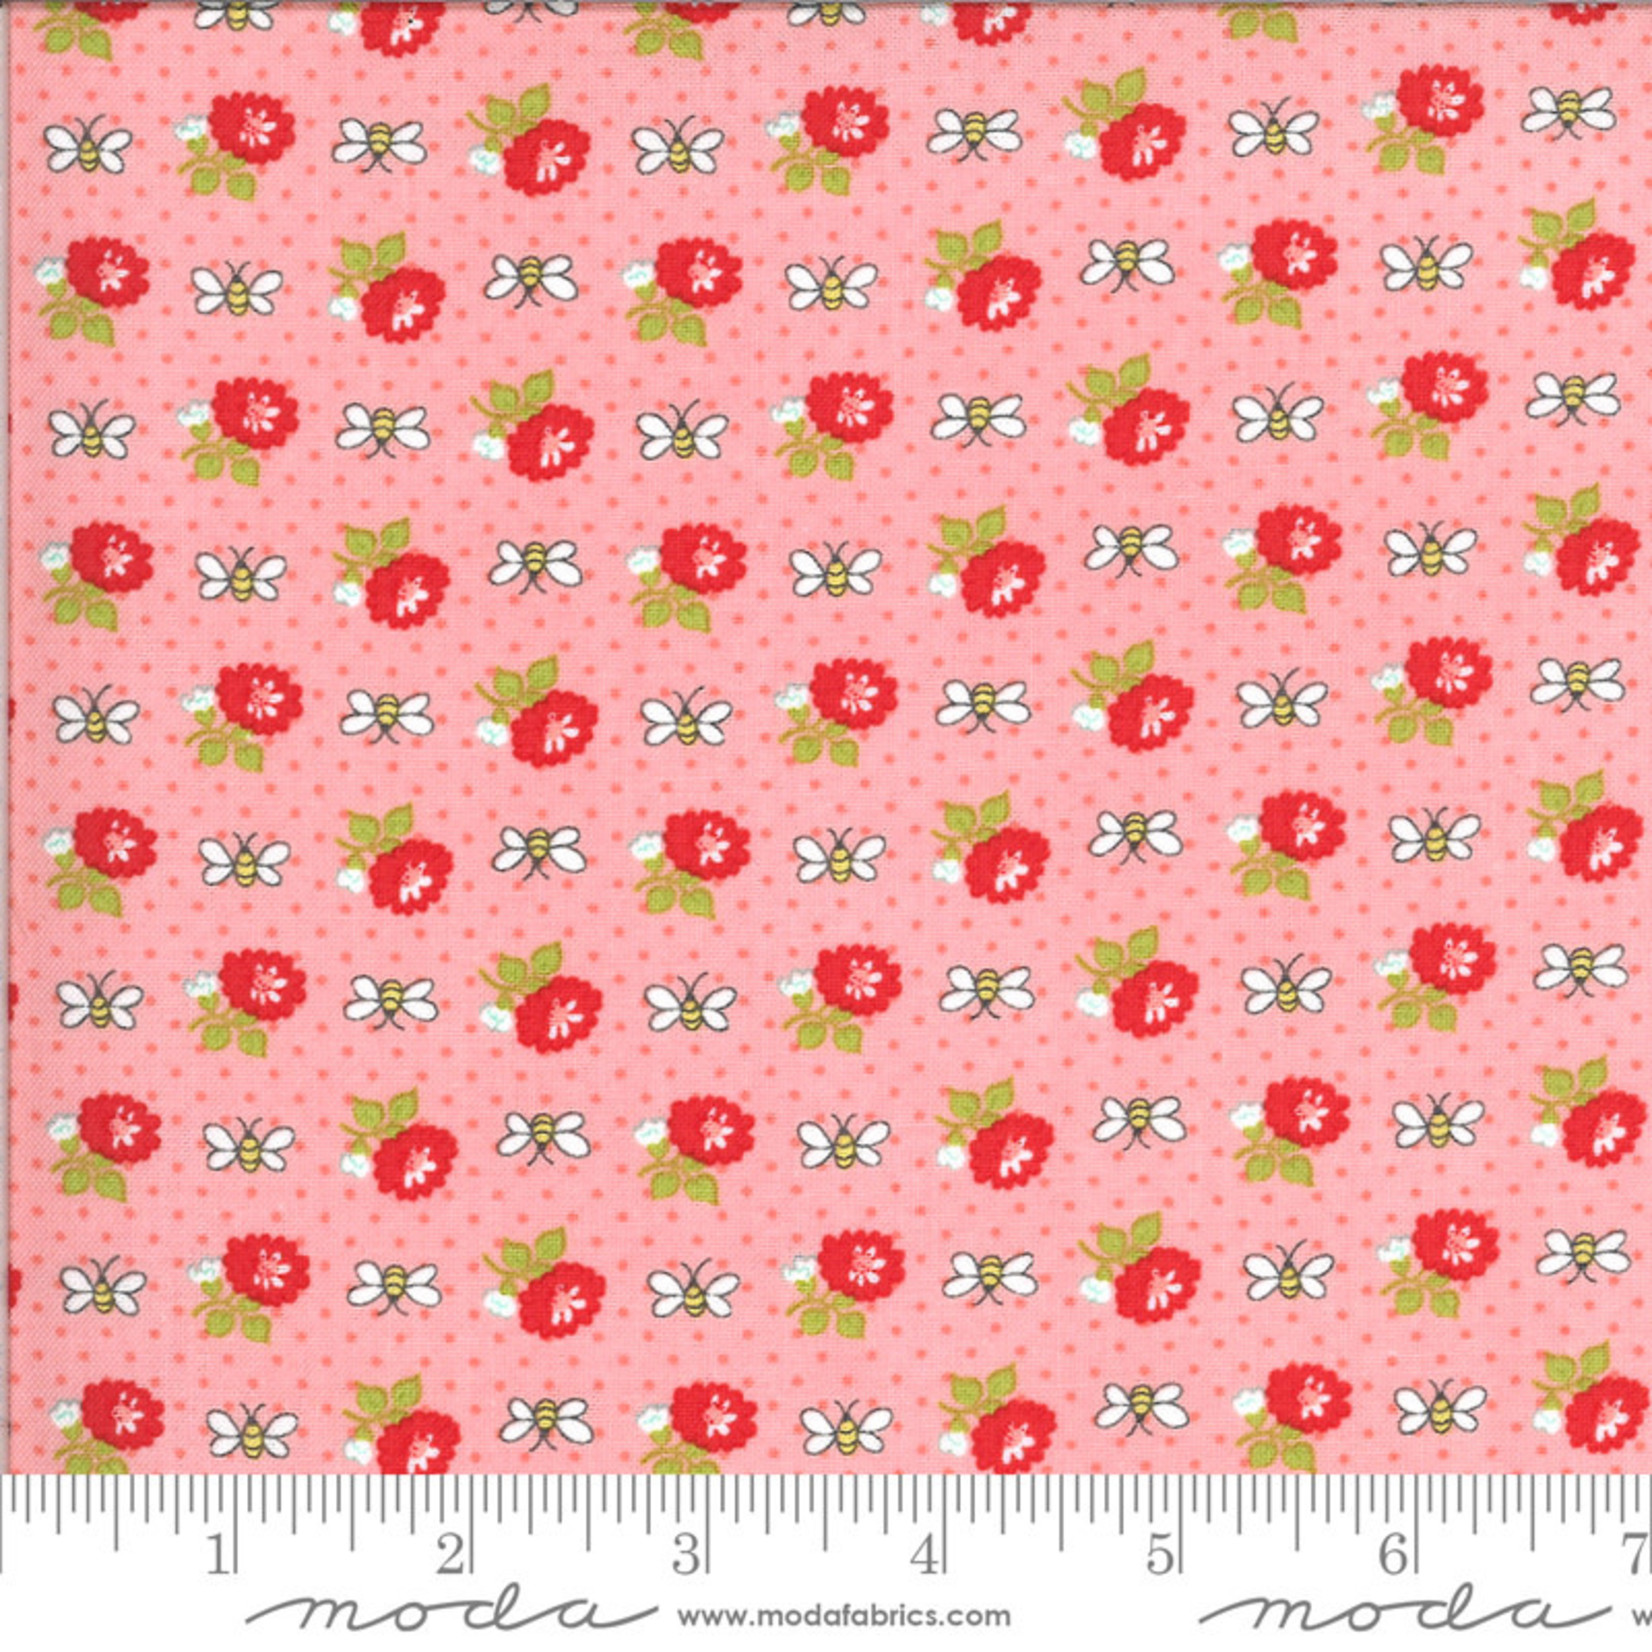 Bonnie & Camille Shine On by Bonnie & Camille, BEESLEY, PINK 55216-15 PER CM OR